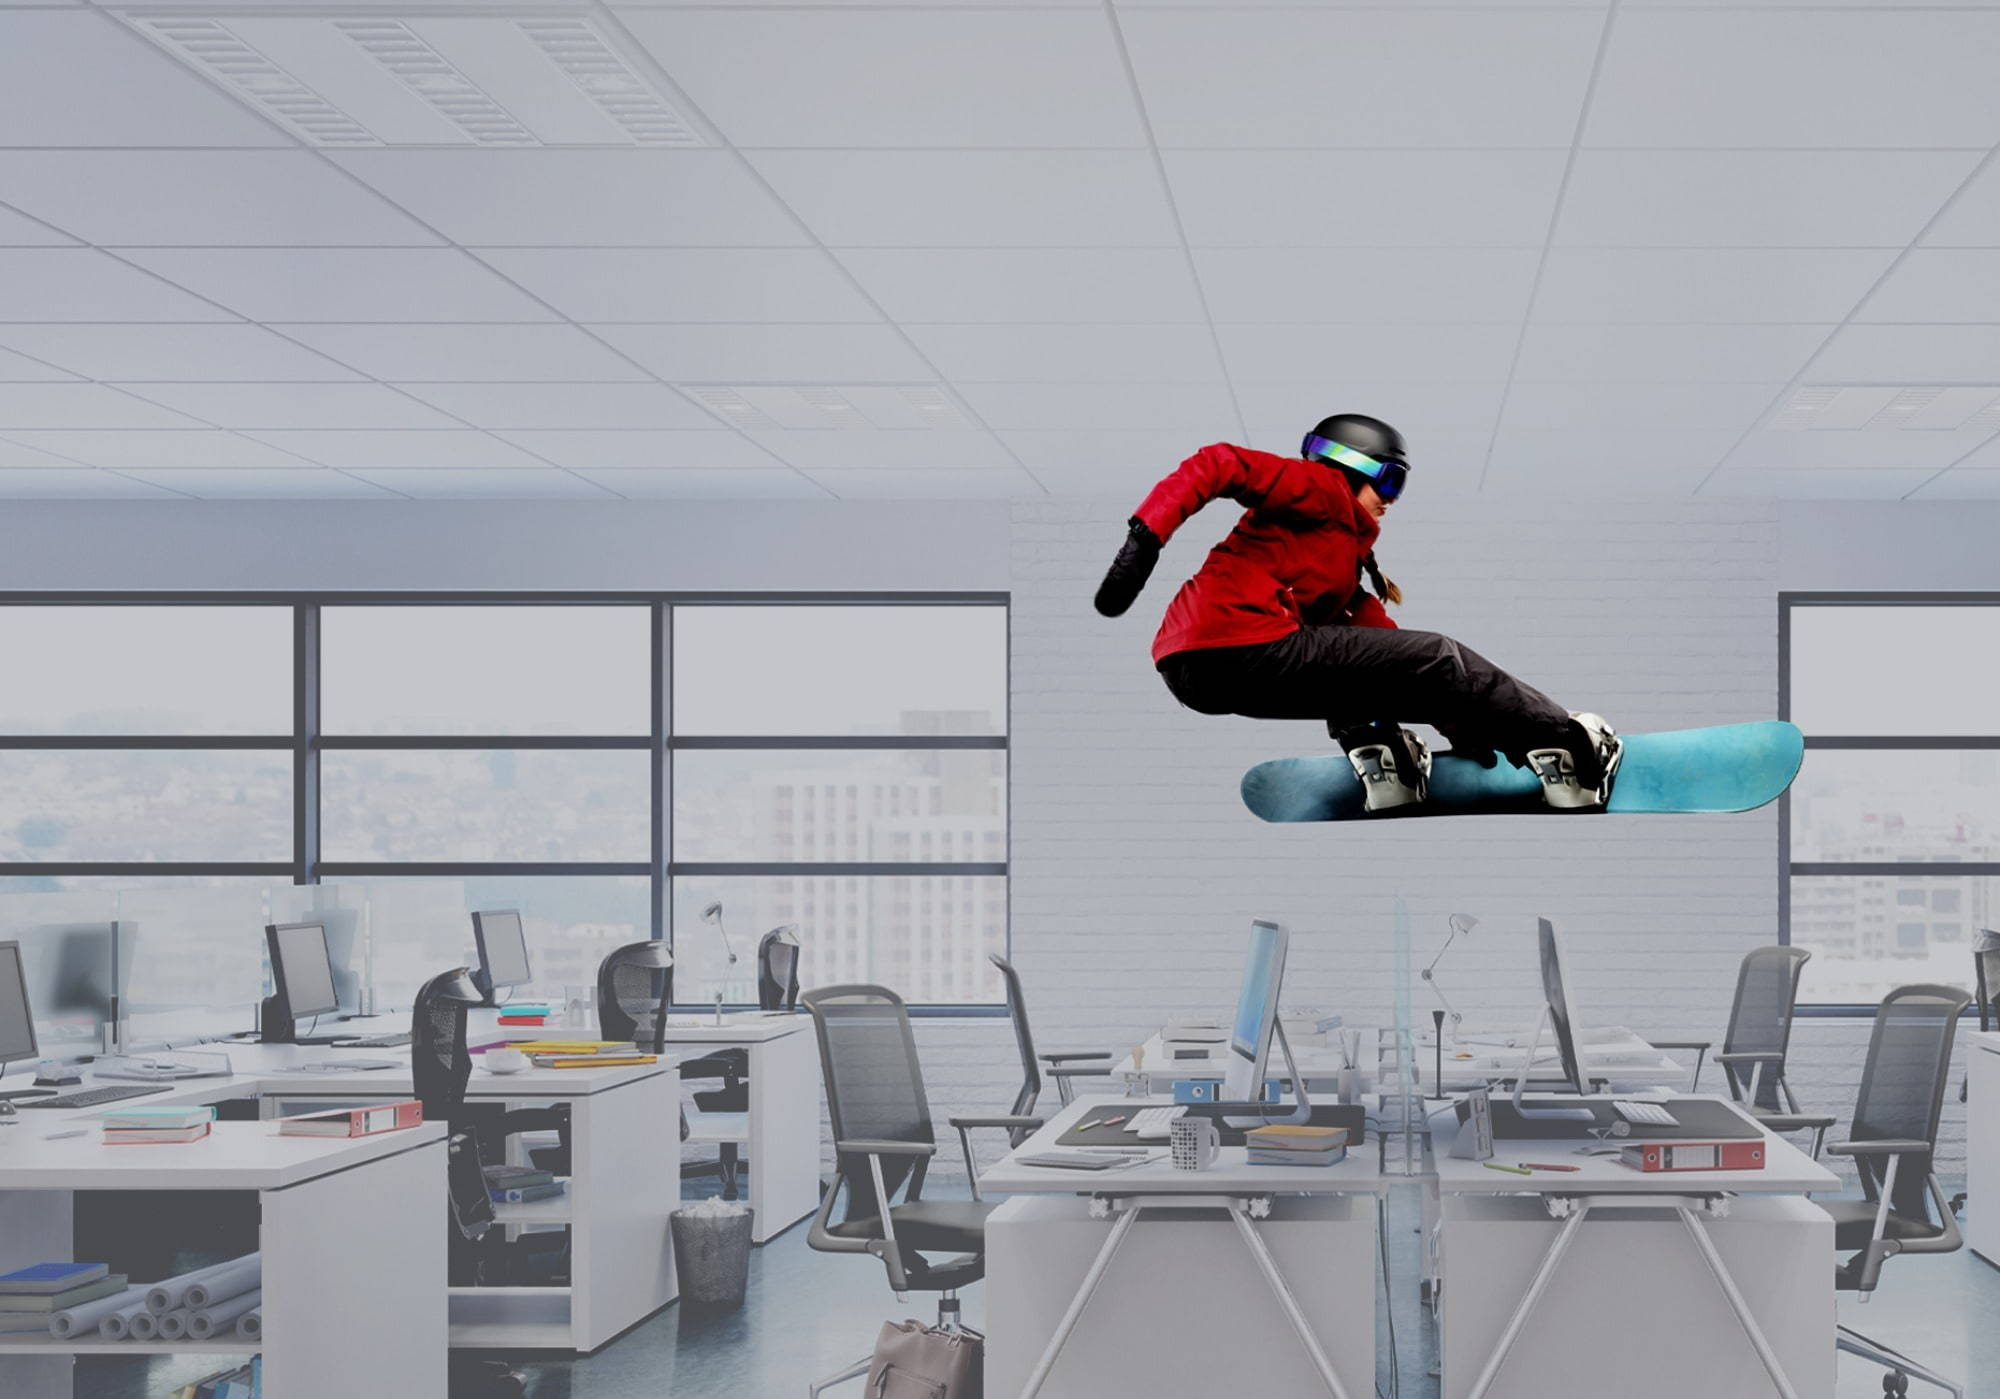 A snowboarding flying over desk set ups to show balance.